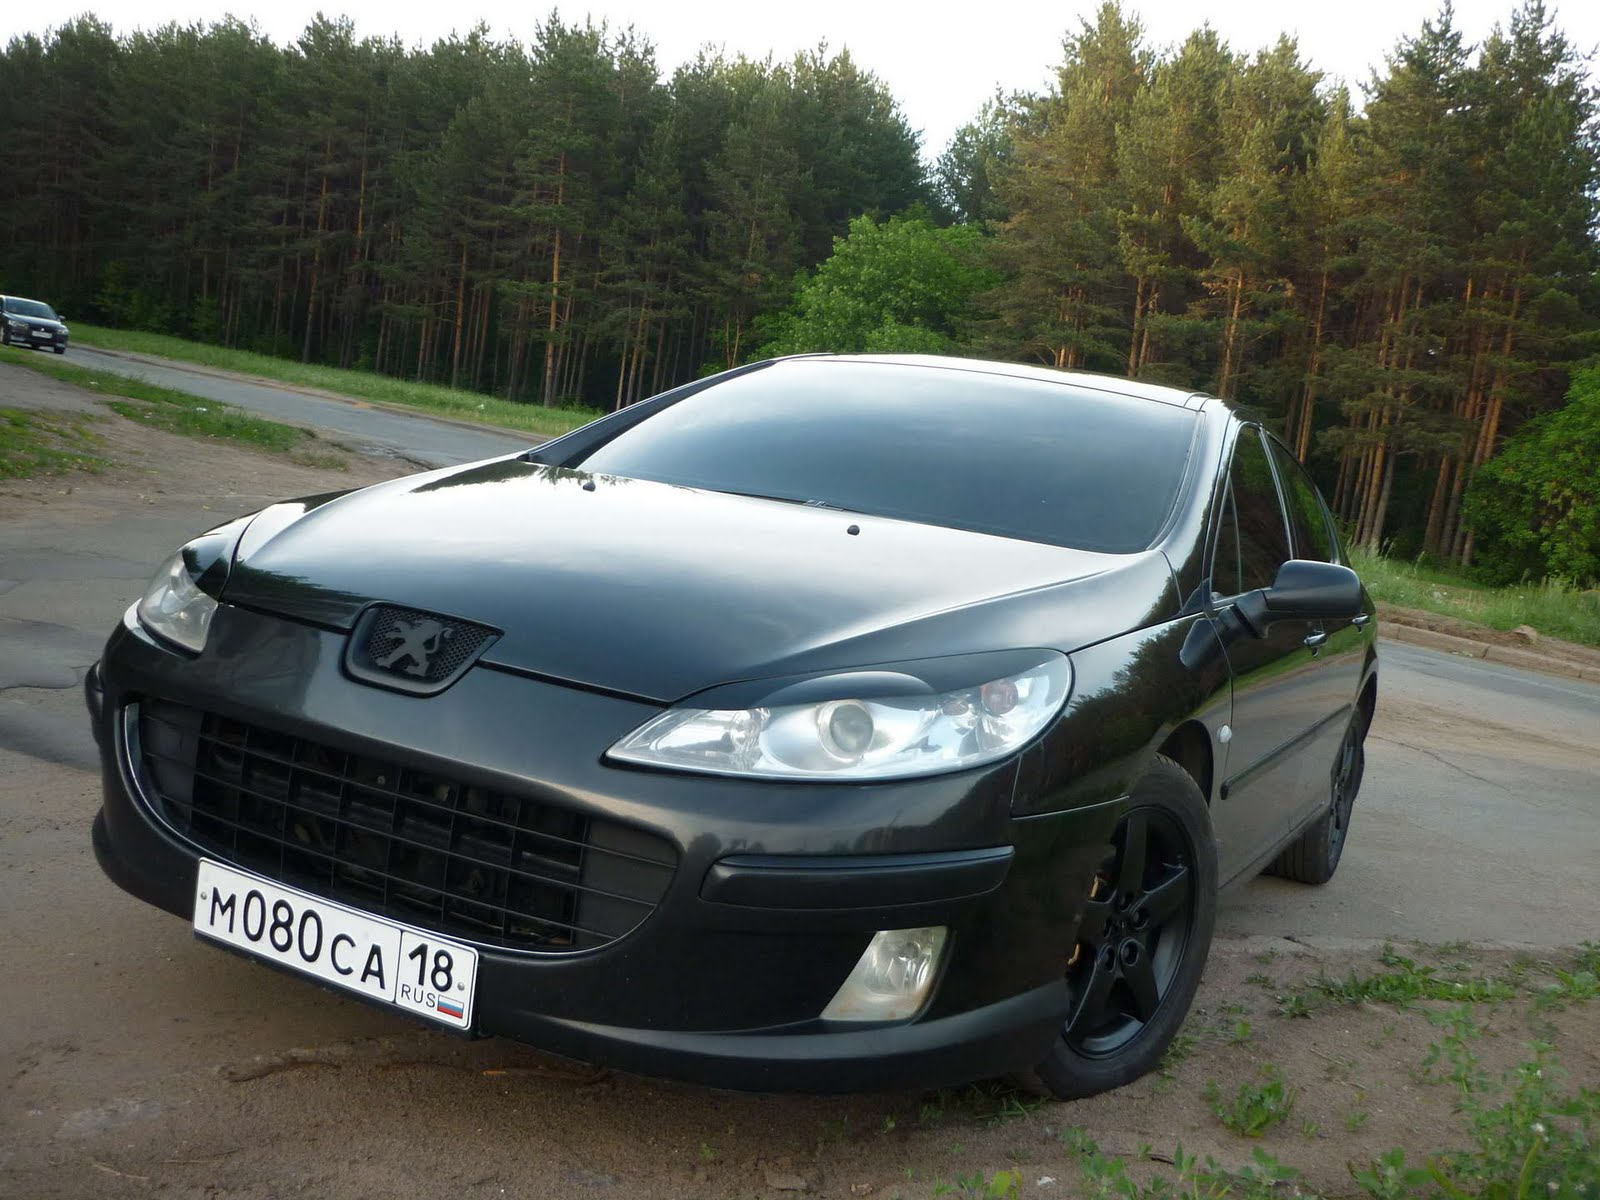 Car Vehicle: Peugeot 407 Tuning